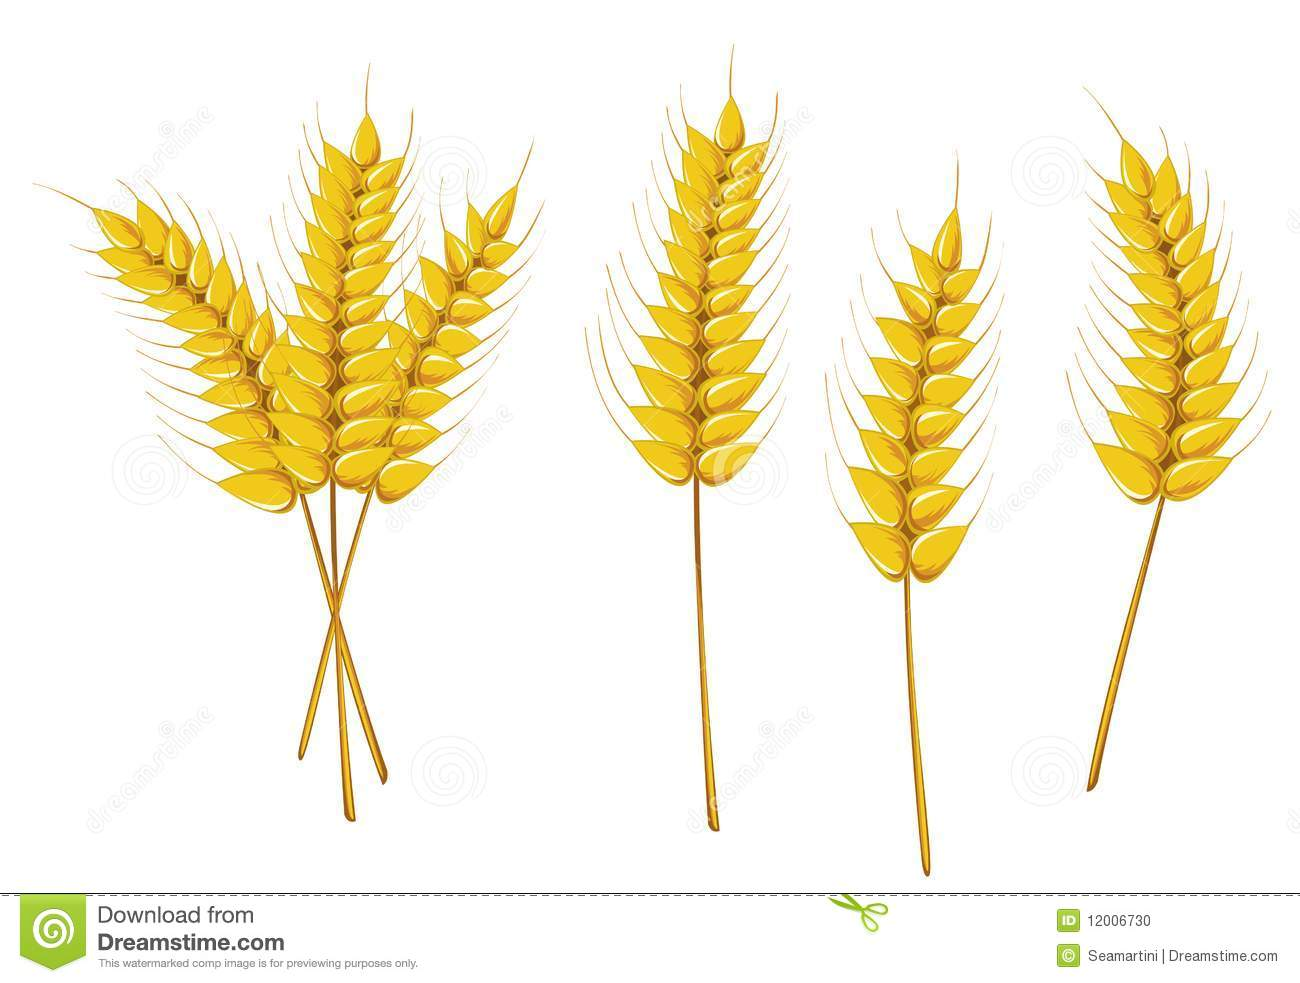 Ripe wheat isolated on white as an agriculture concept.